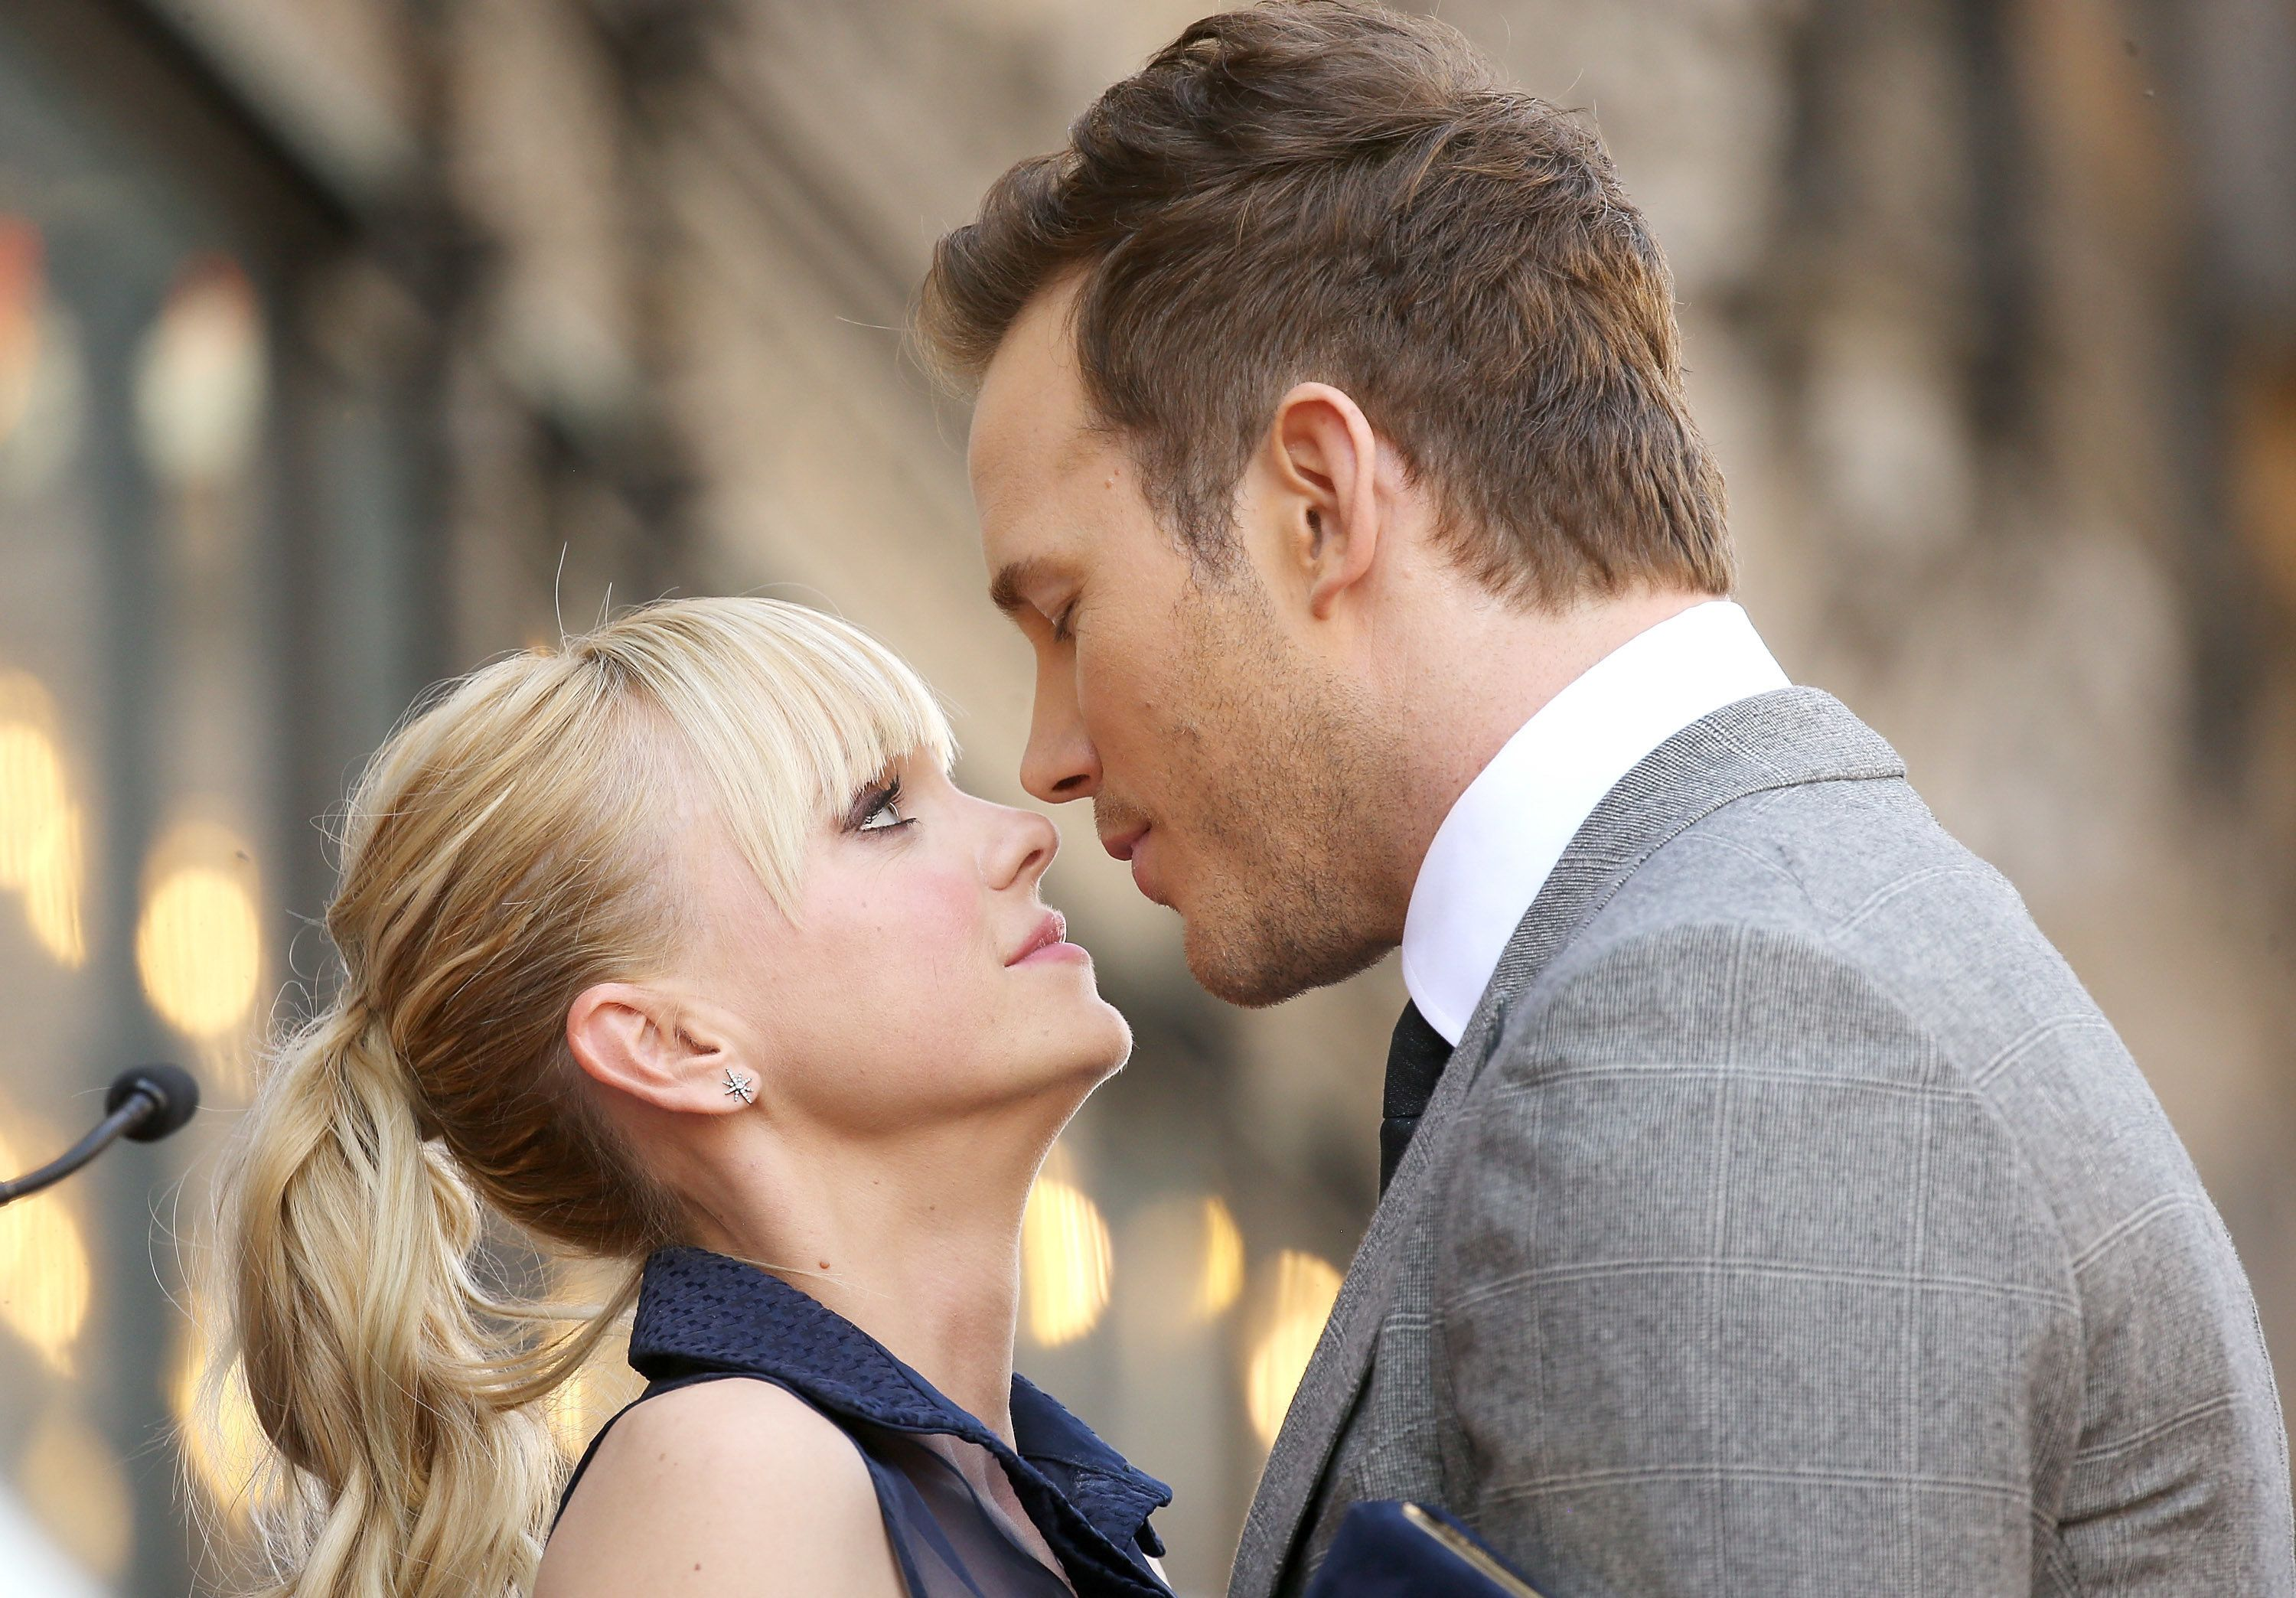 HOLLYWOOD, CA - APRIL 21:  Anna Faris and Chris Pratt attend the ceremony honoring Chris Pratt with a Star on The Hollywood Walk of Fame held on April 21, 2017 in Hollywood, California.  (Photo by Michael Tran/FilmMagic)